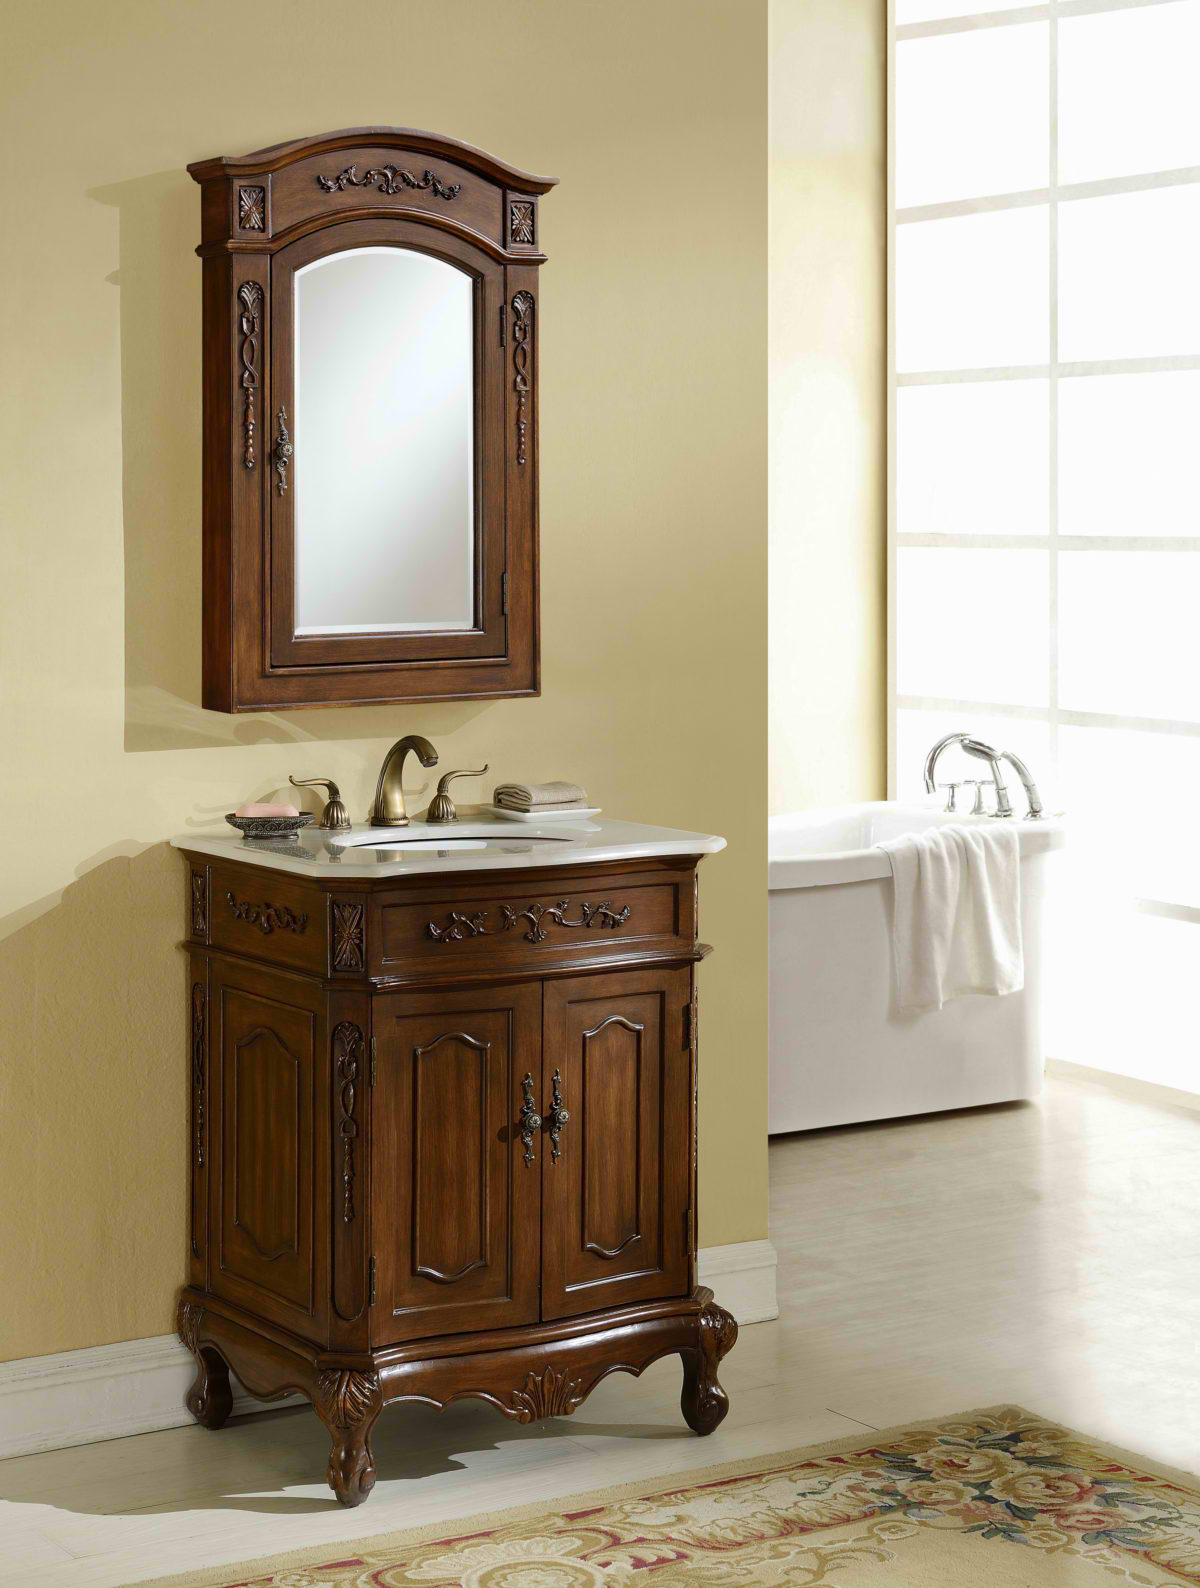 "27"" Deep Chestnut Finish Vanity with Matching Medicine Cabinet"